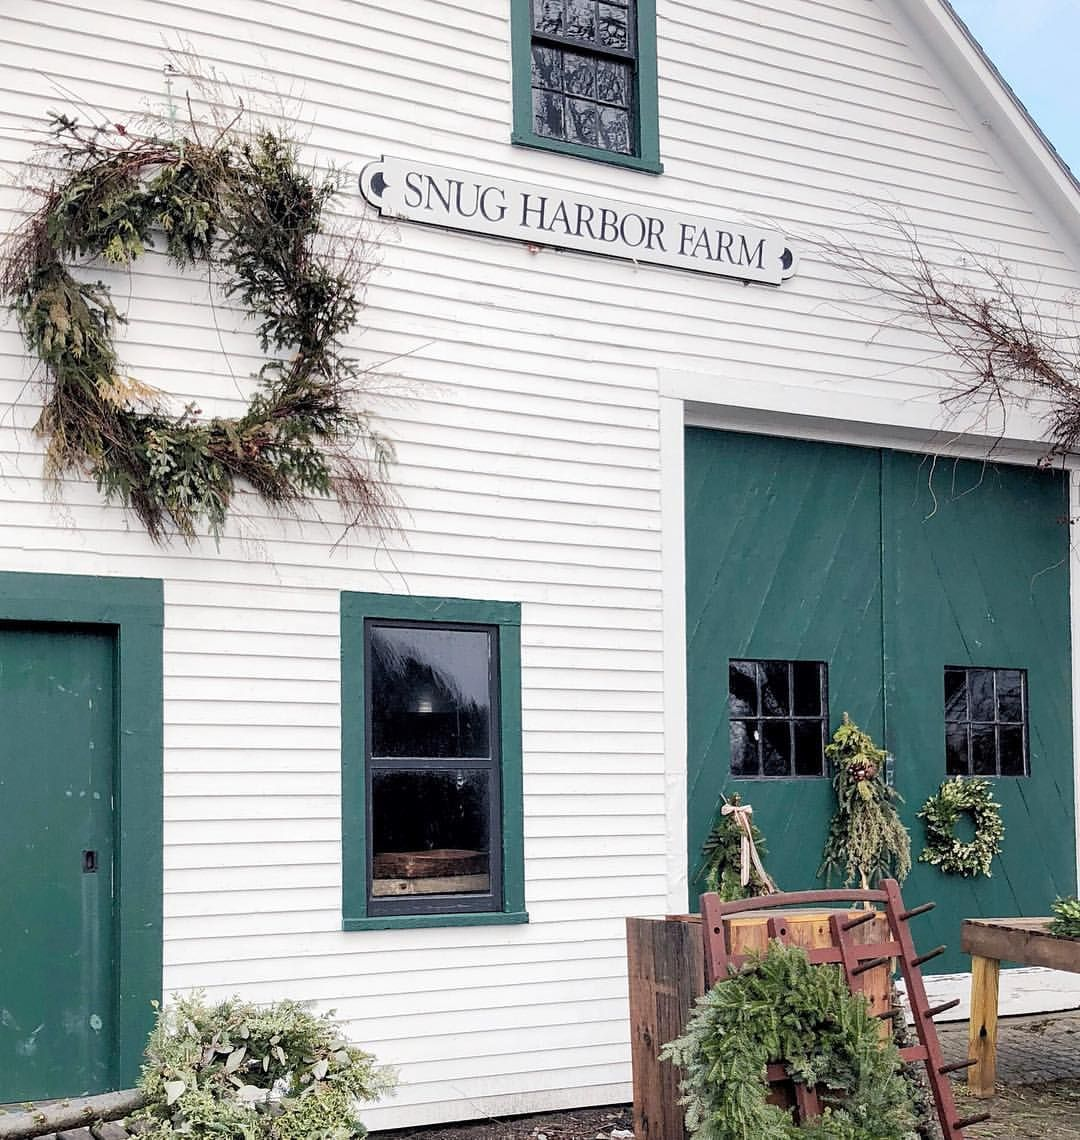 Snug harbor farm in Kennebunkport, Maine all decorated for ...